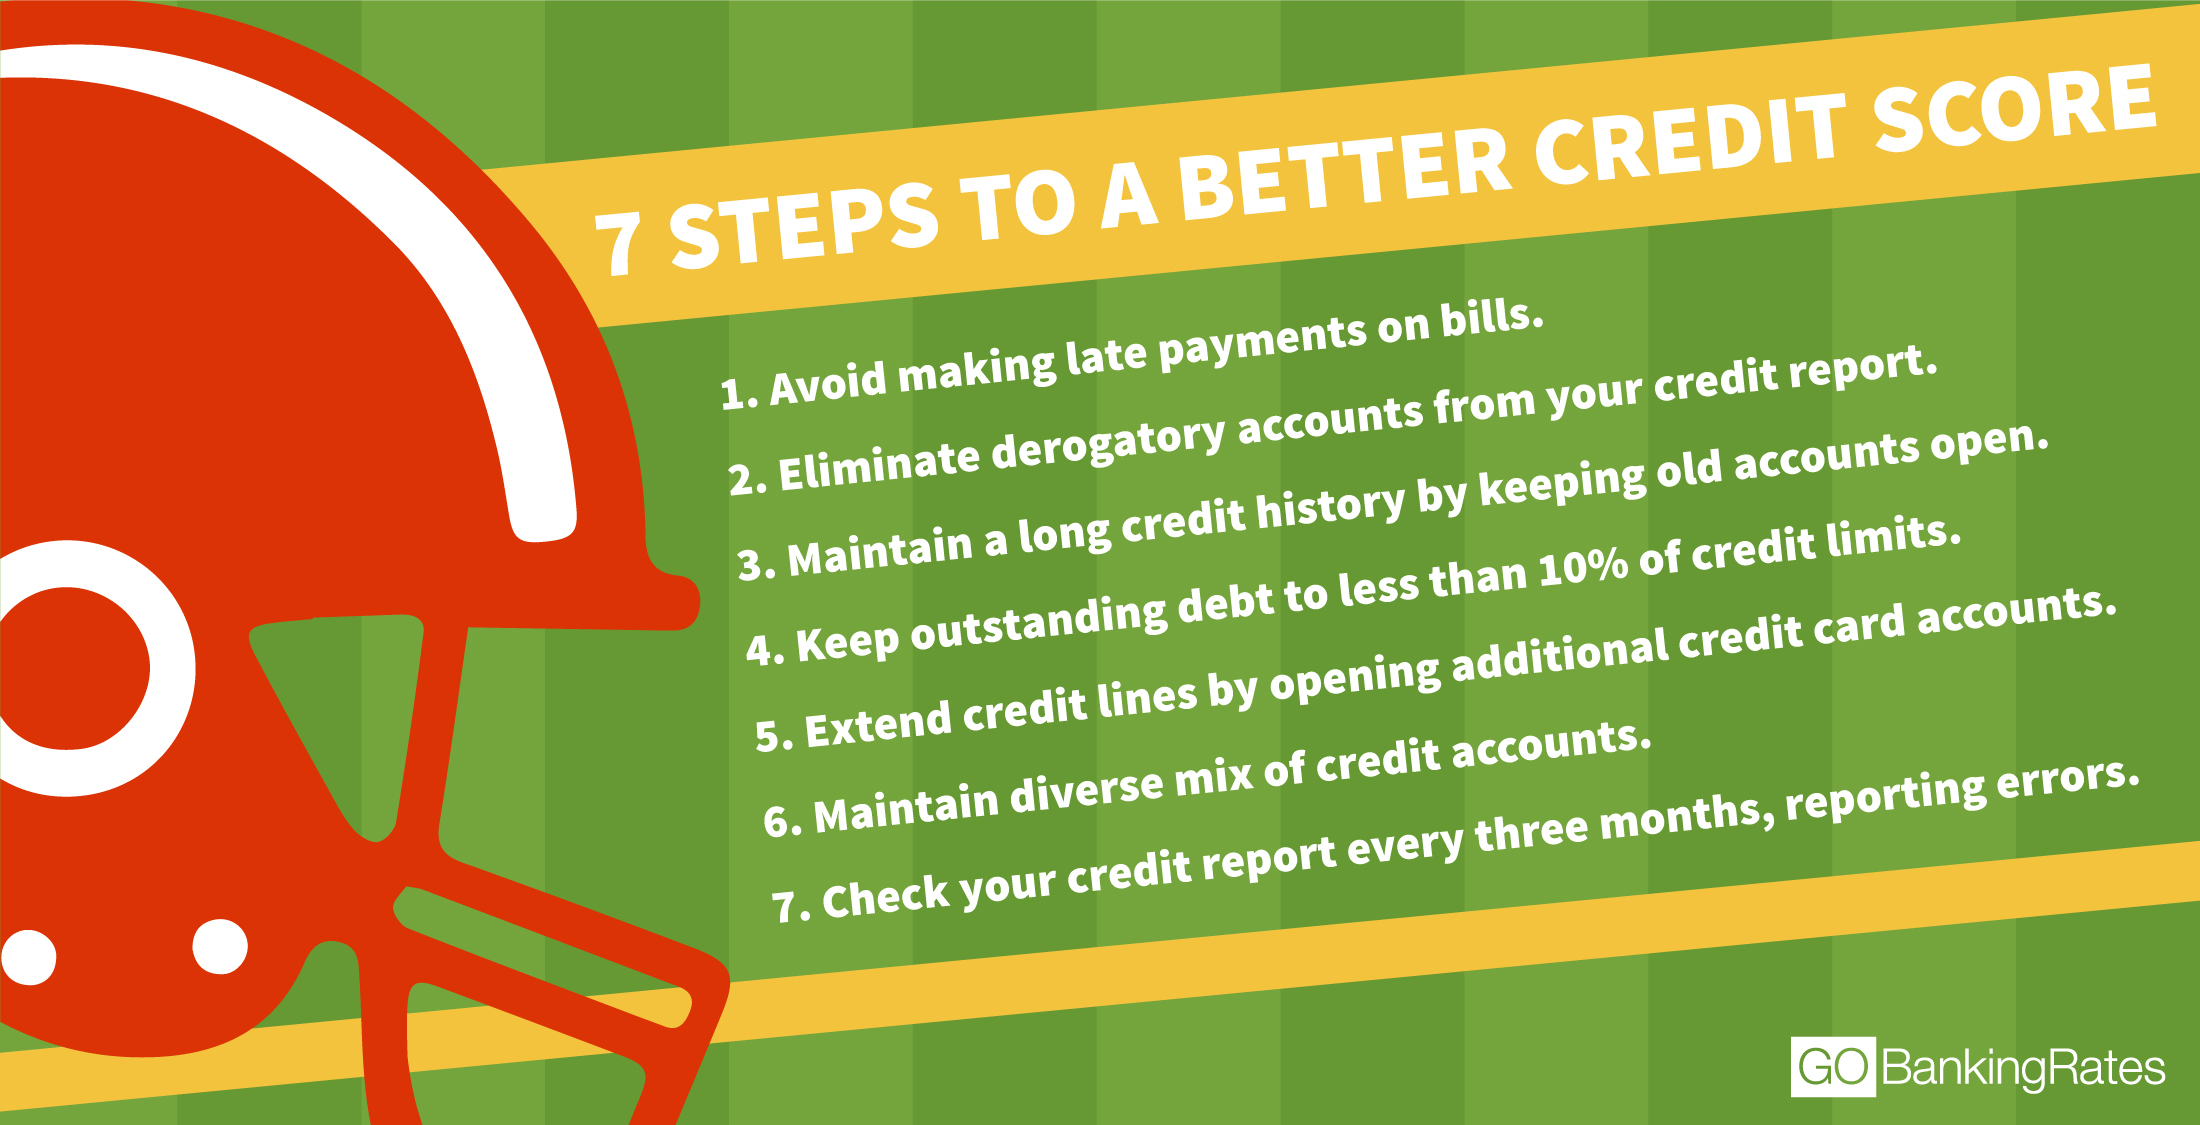 steps to a better credit score